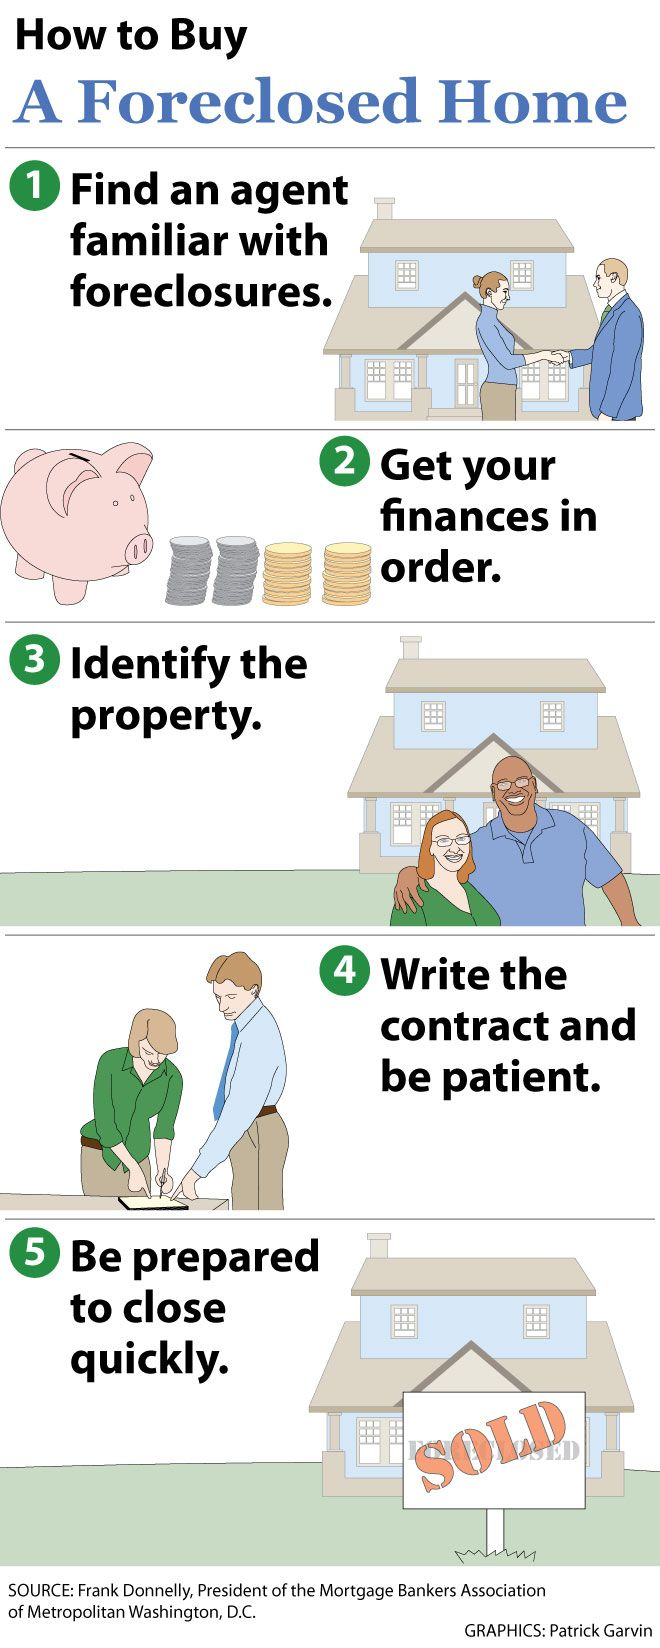 How To Buy A Foreclosed Home Or Auctioned Property